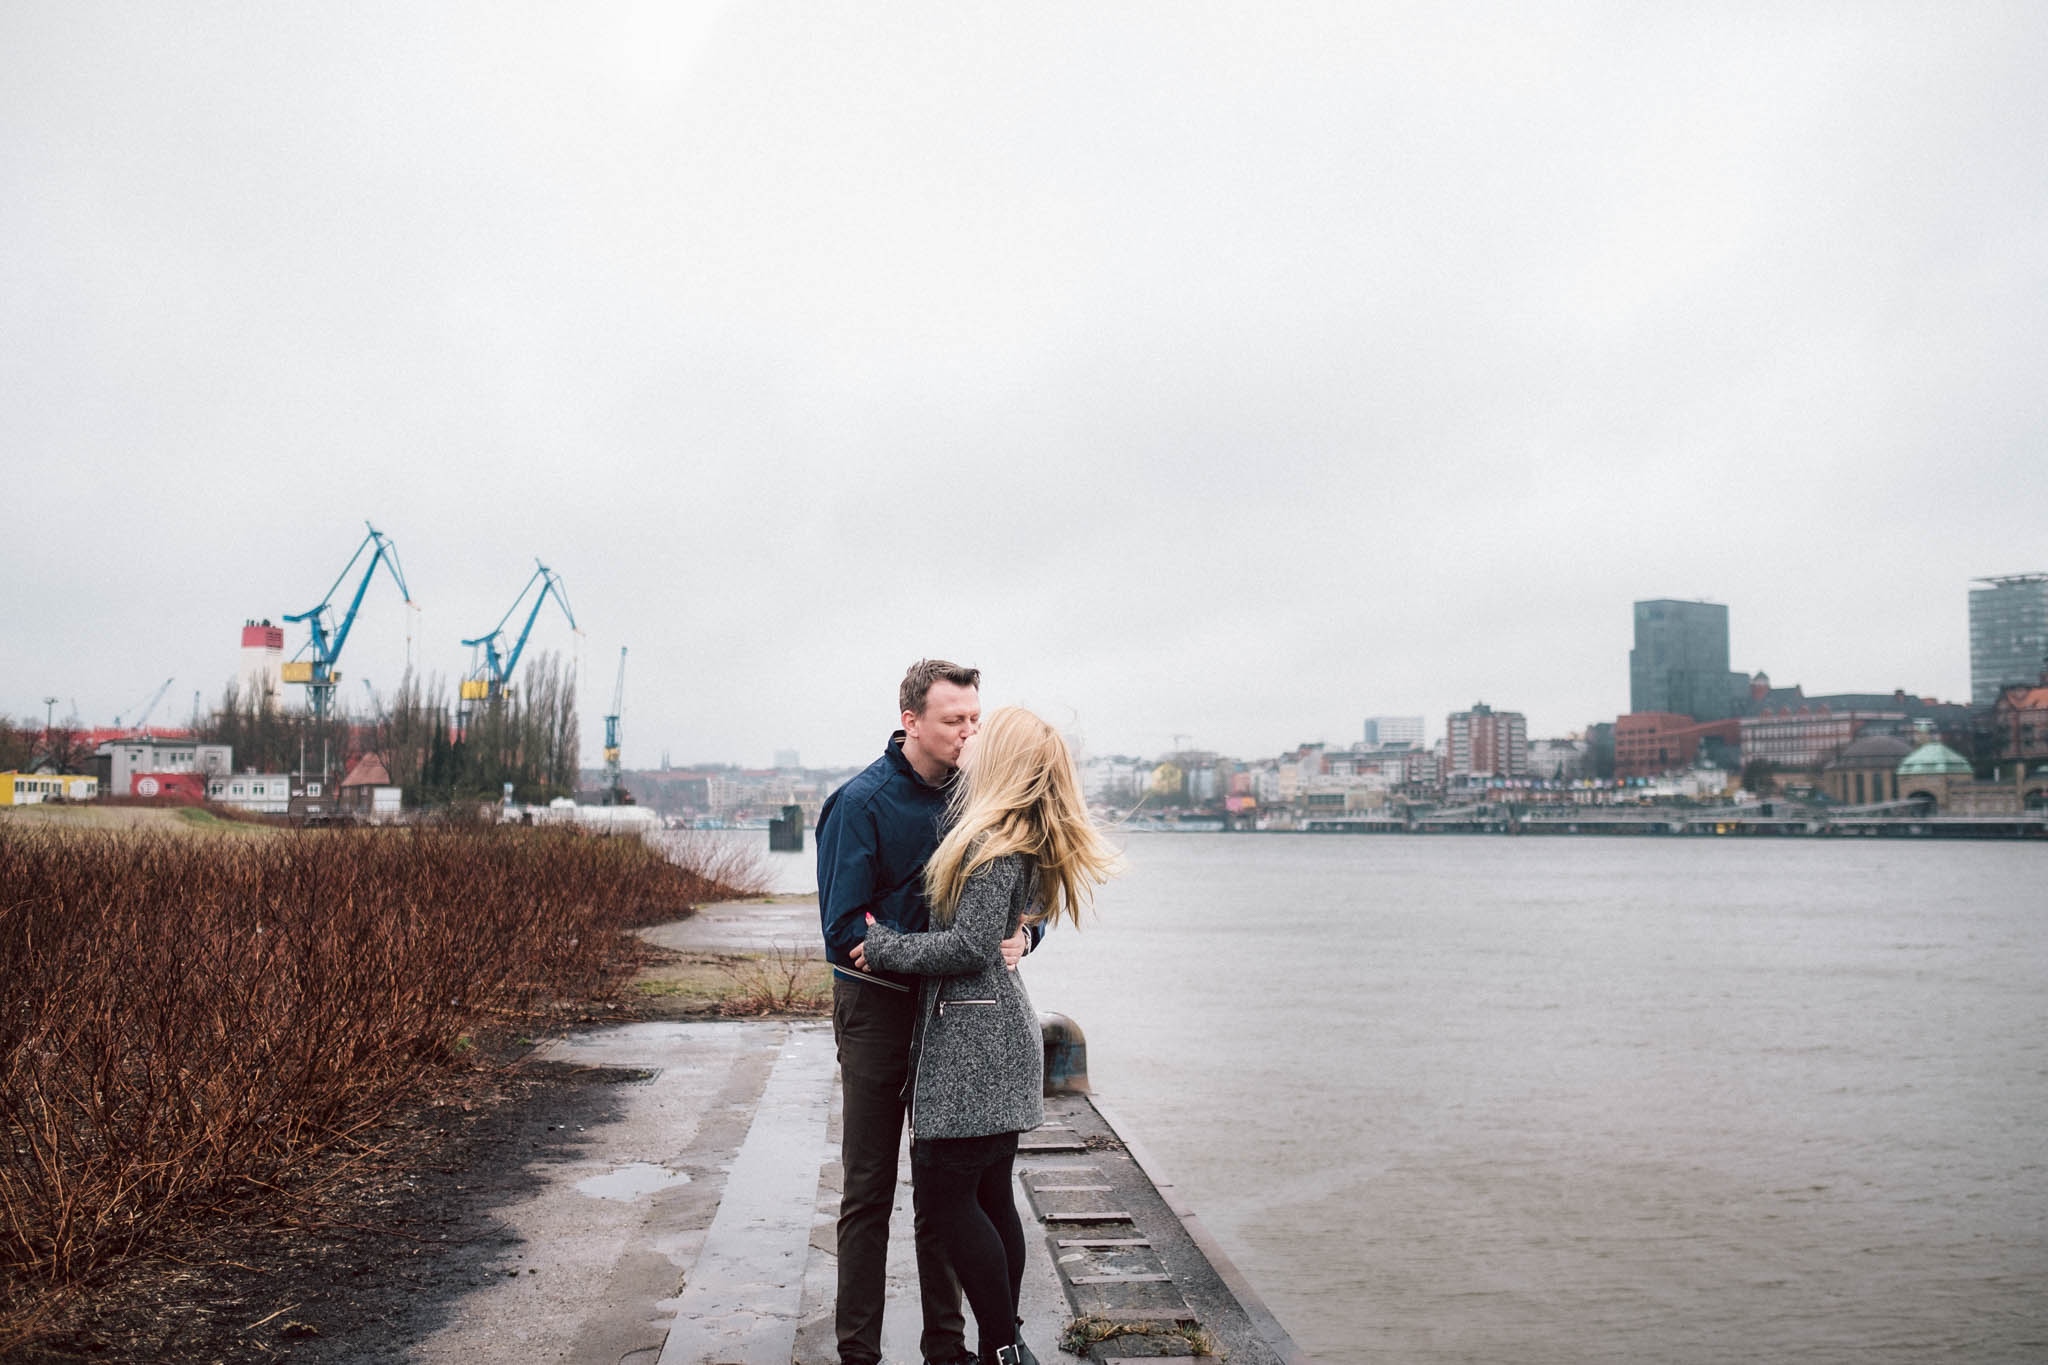 Engagementshooting, Hochzeitsfieber by Photo-Schomburg, Pärchenshoot, Hamburg, Elbe, Hamburger Hafen, Hochzeitsfotograf, Wedding, Coupleshoot, Hochzeitsfotografie-7